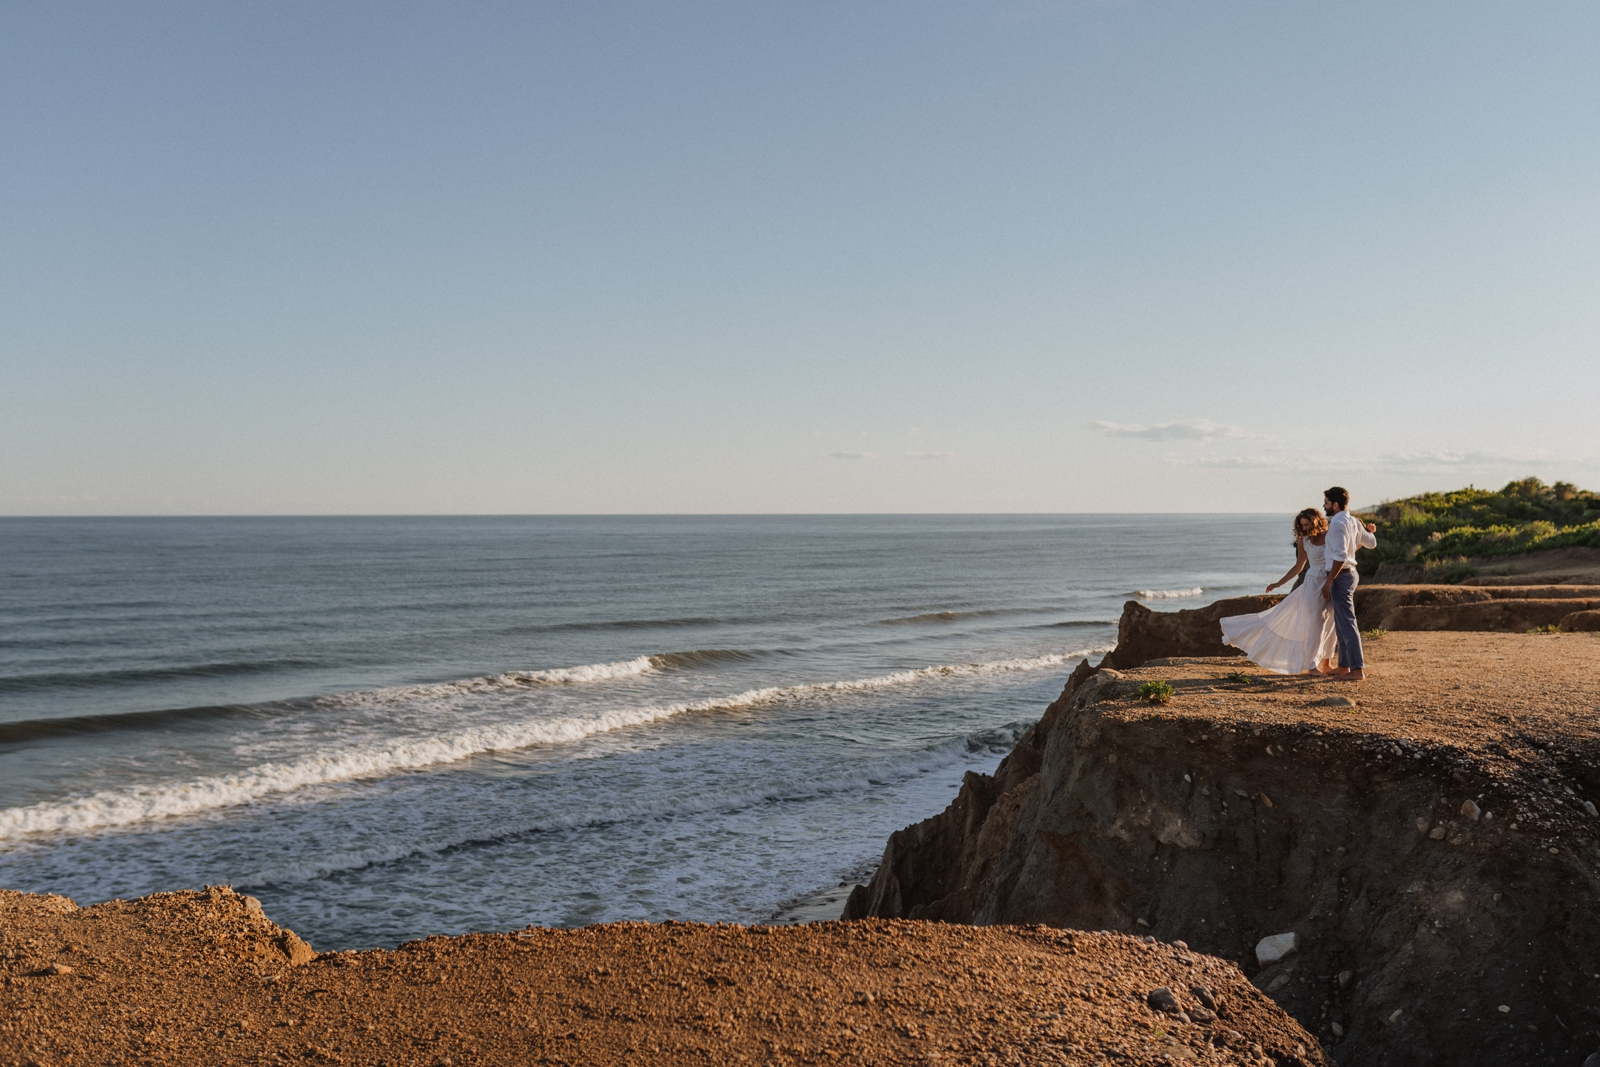 JJP_Nikki & Bud_Shadmoor_Montauk_NY_Cliff Engagement Session19.jpg_blog.jpg